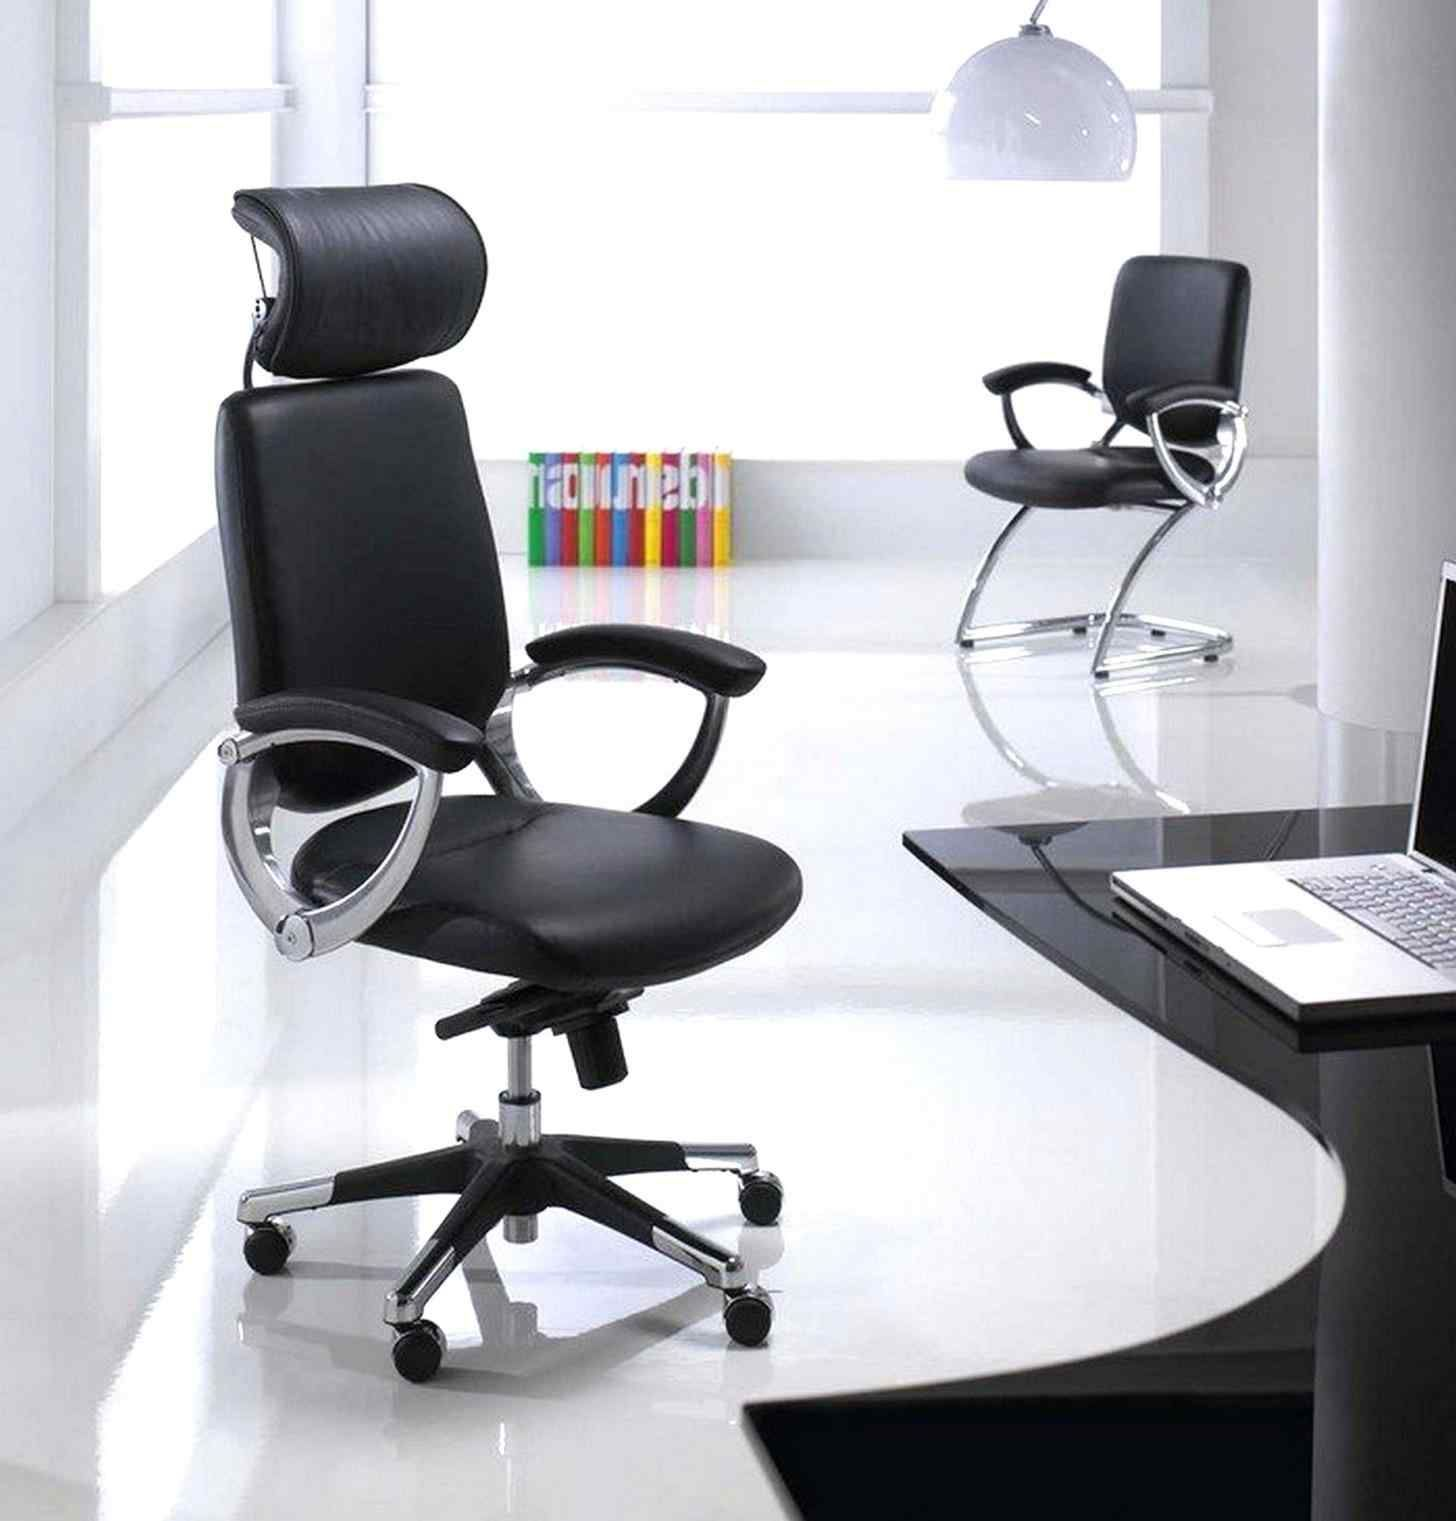 20 Collection Of Most Comfortable Chair Designs For Comfortable Sitting Work Positions Best Office Chair Chair Design